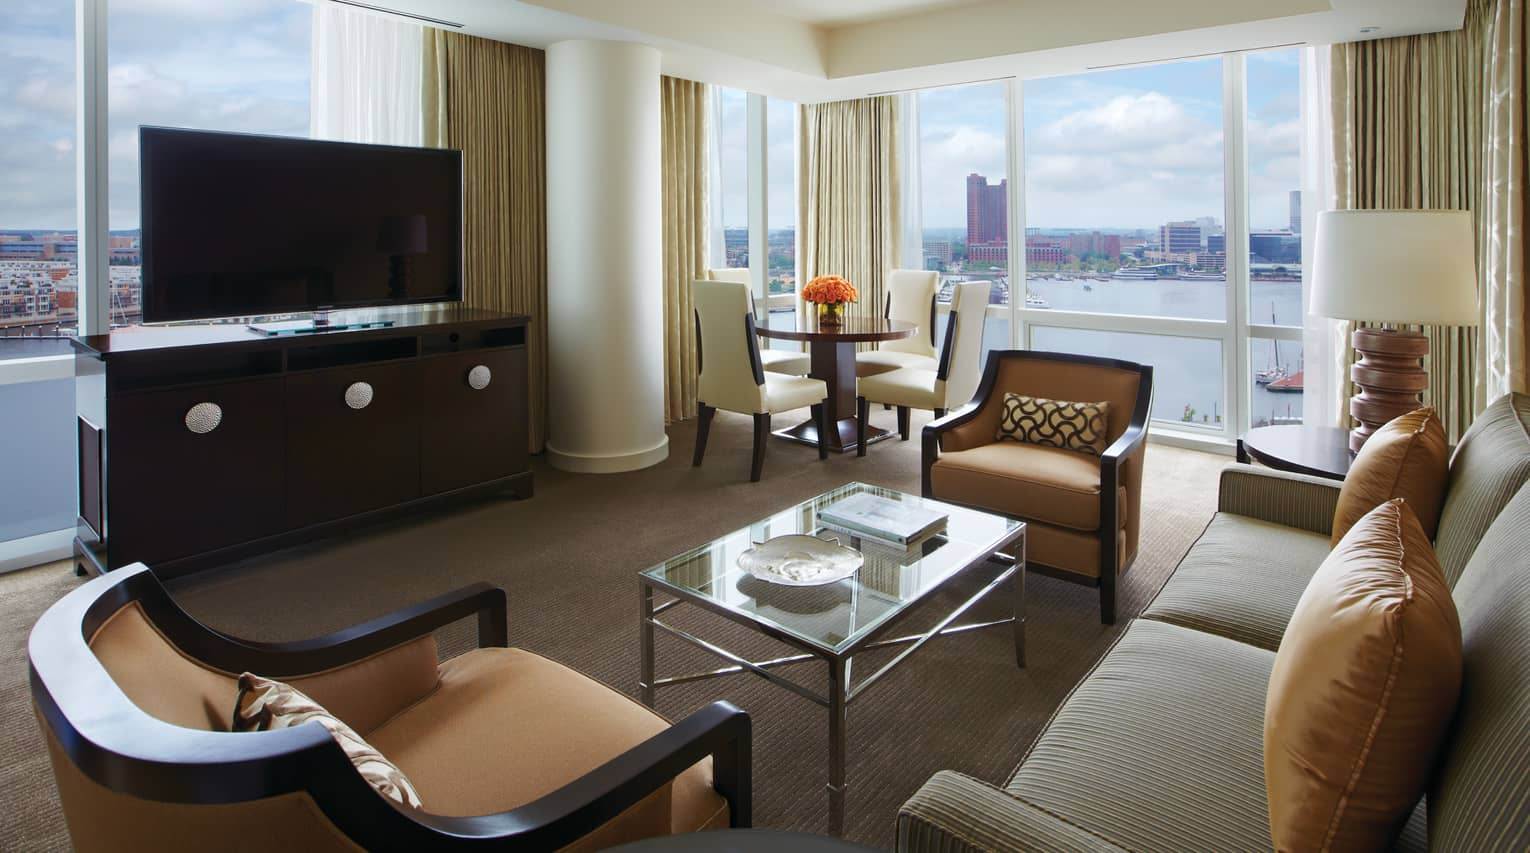 Harbour Suite loveseat, armchairs, dresser and TV in front of window overlooking water